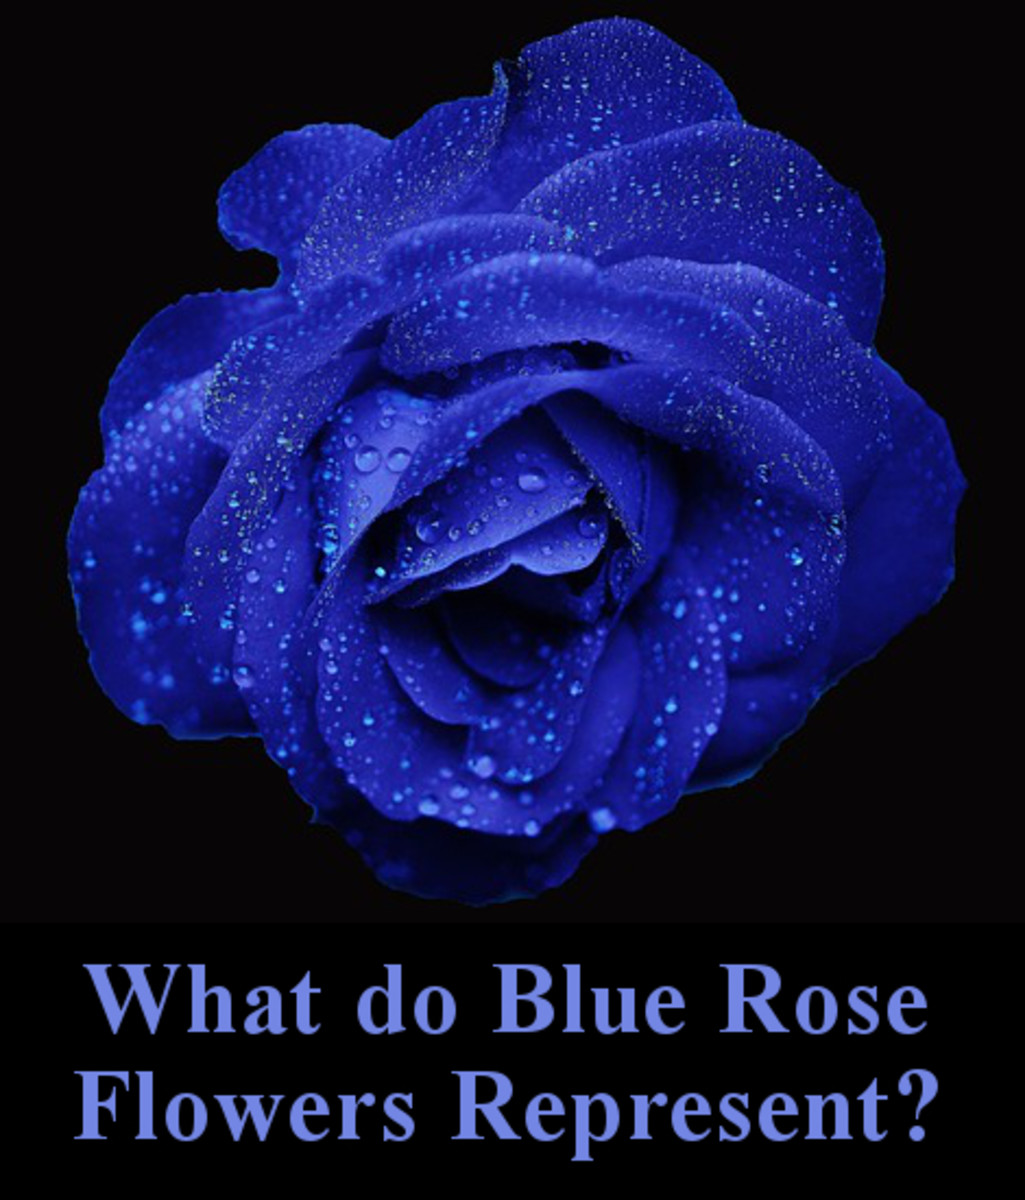 What do blue rose flowers represent?